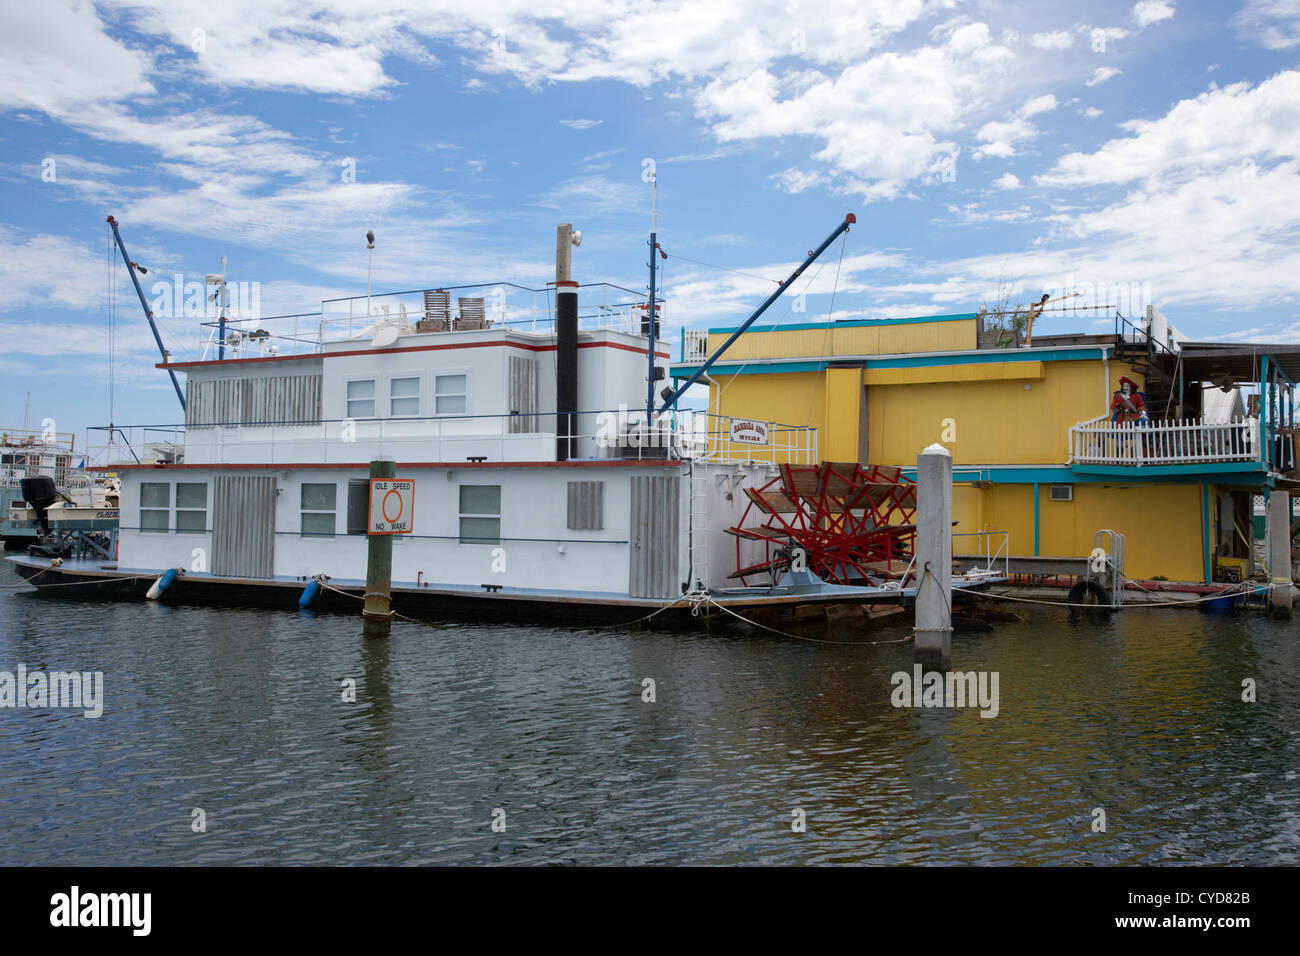 floating homes in the shape of a paddle steamer key west harbor florida usa - Stock Image